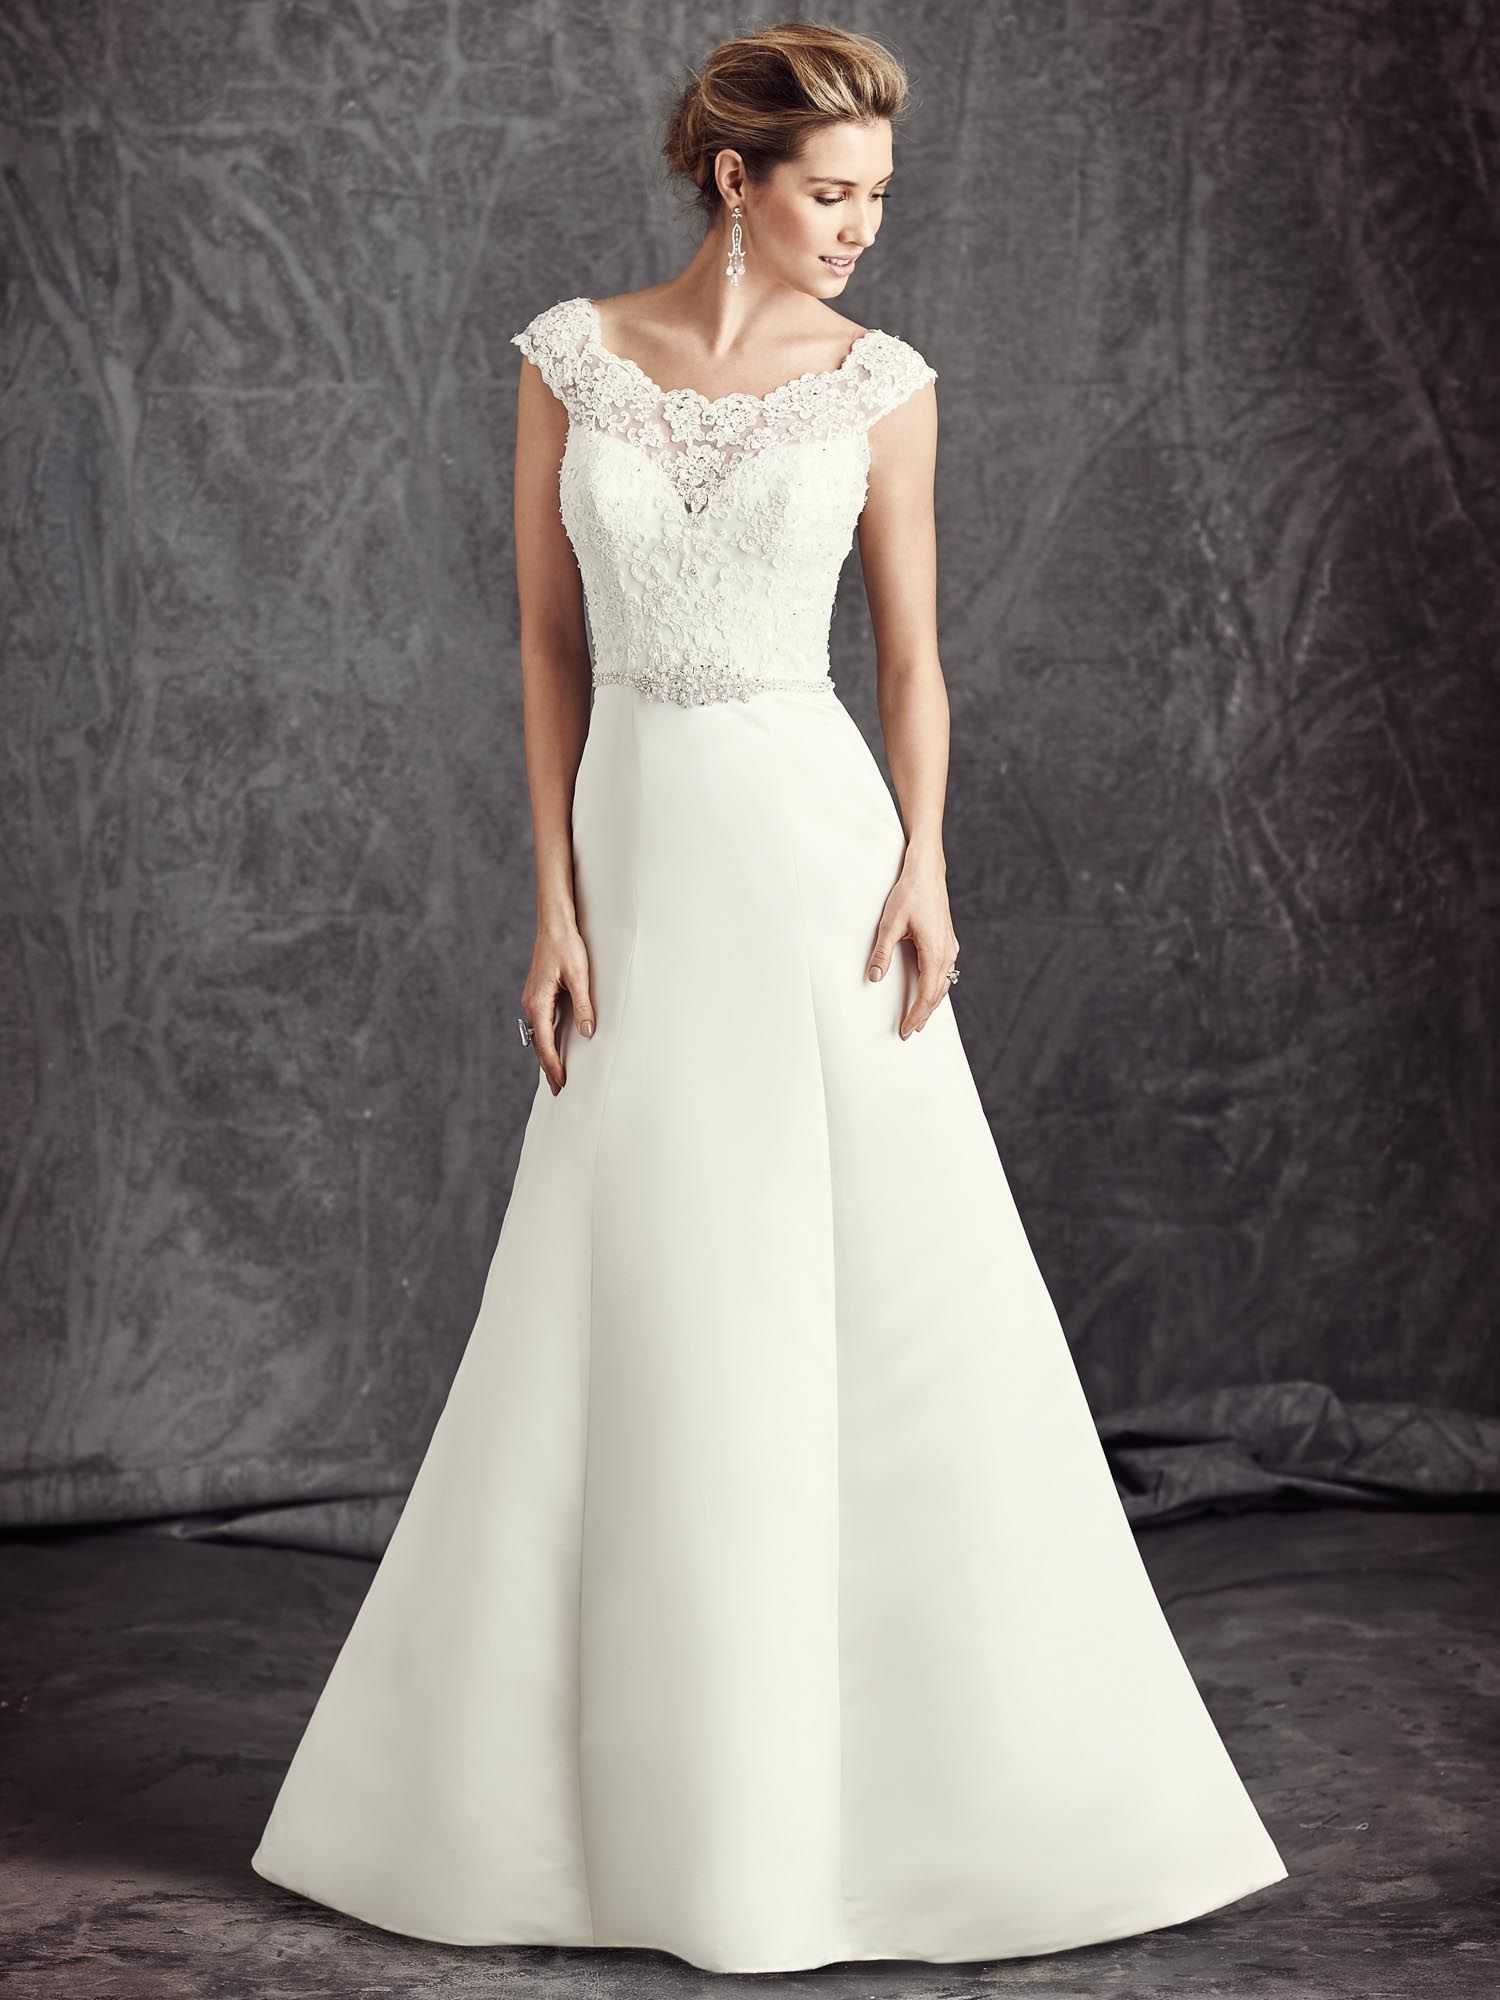 Drop waist a line wedding dress  Ella Rosa Style BE  ALine  OfftheShoulder  Dropped Waist